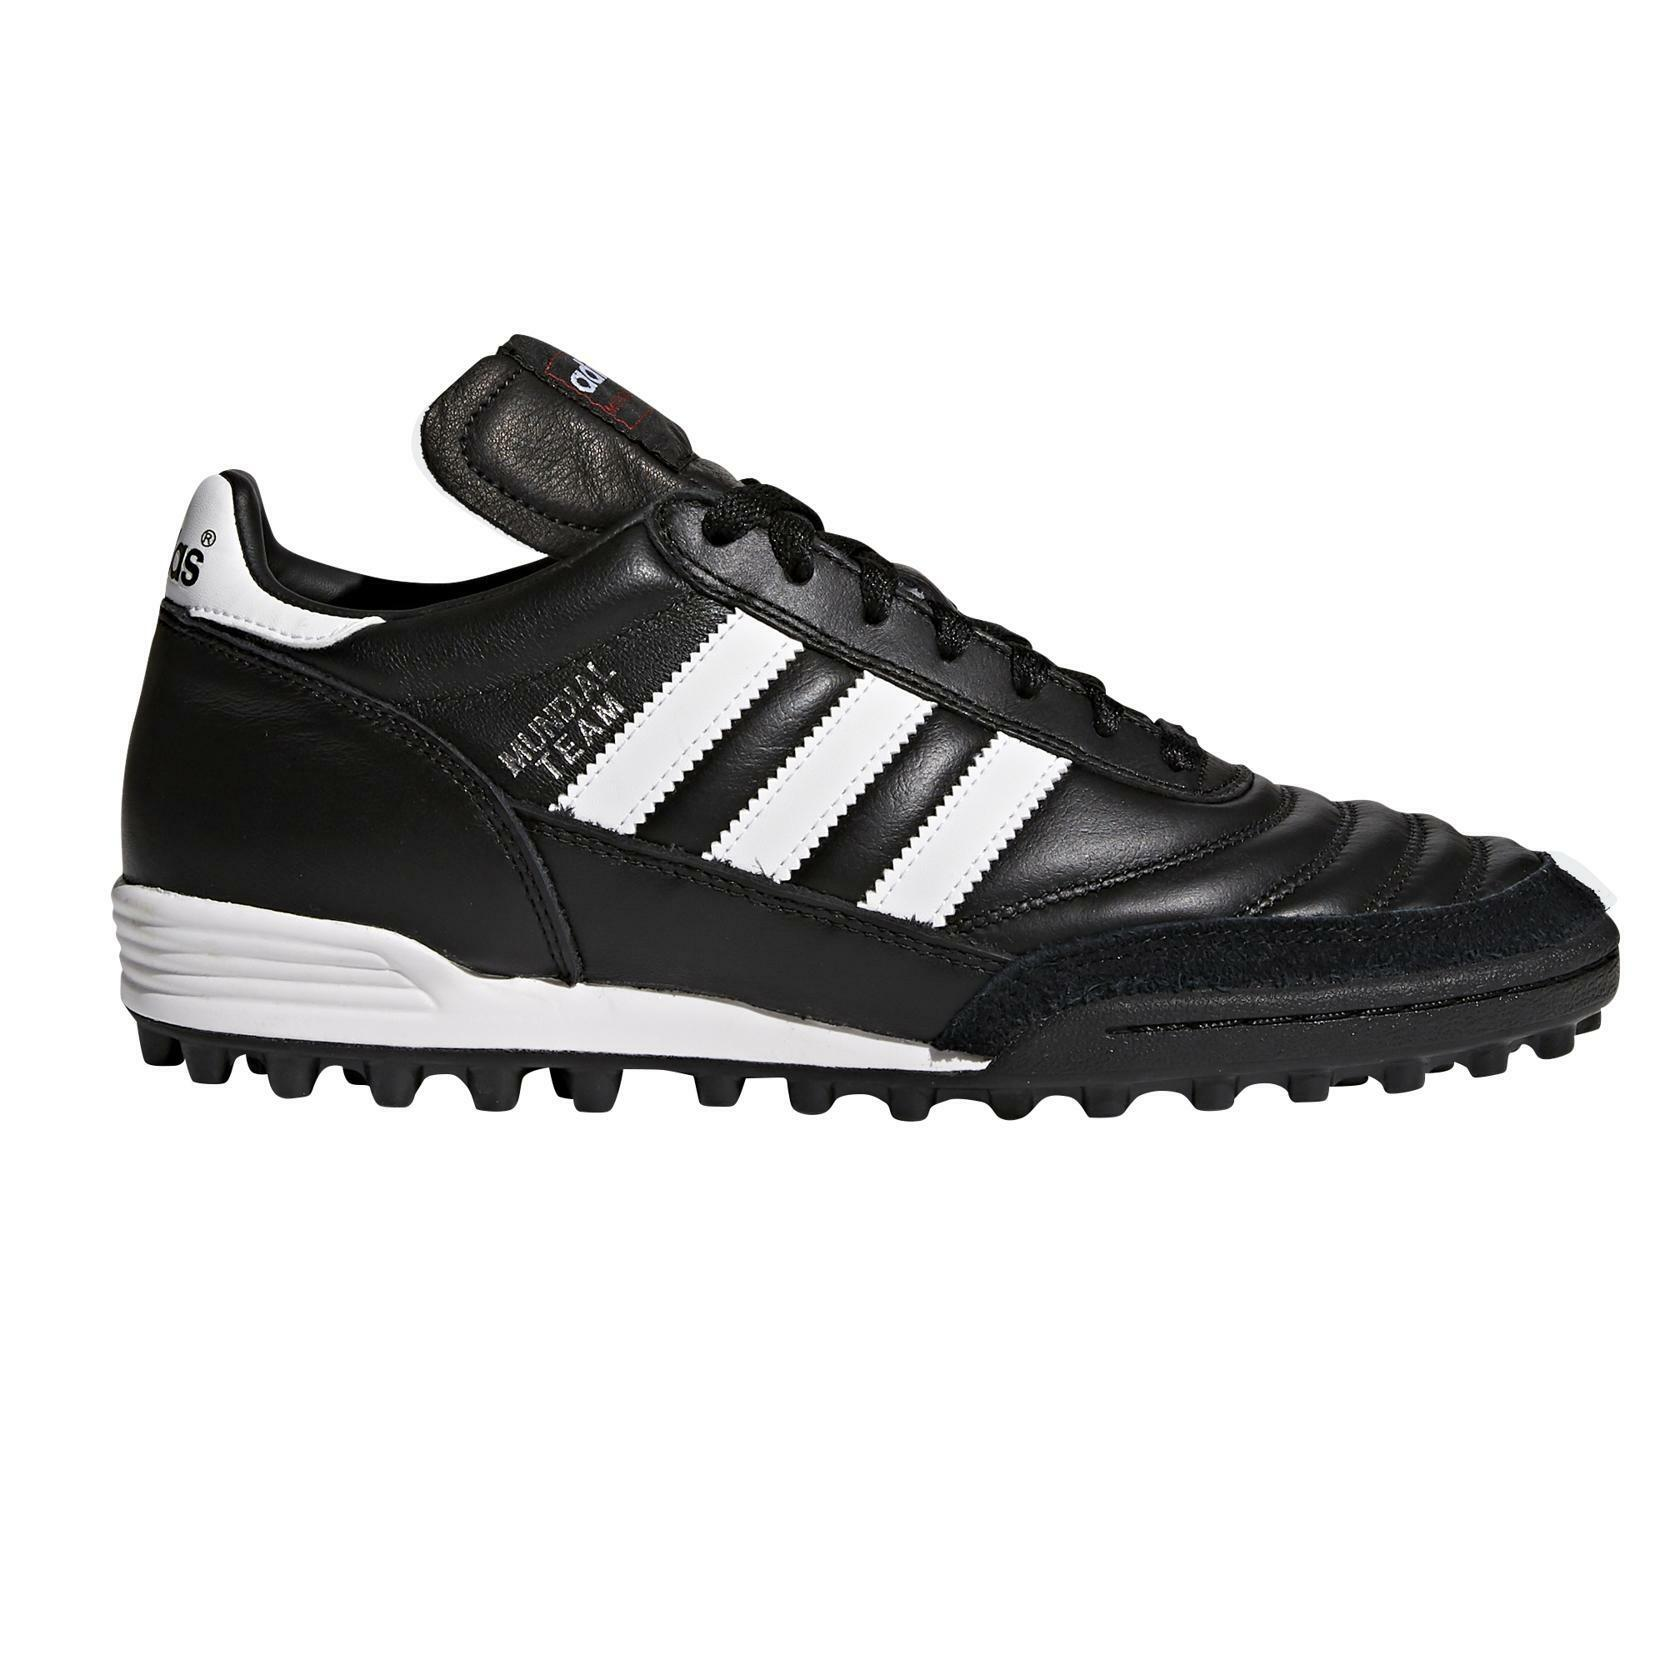 adidas adidas scarpa calcetto mundial team tf